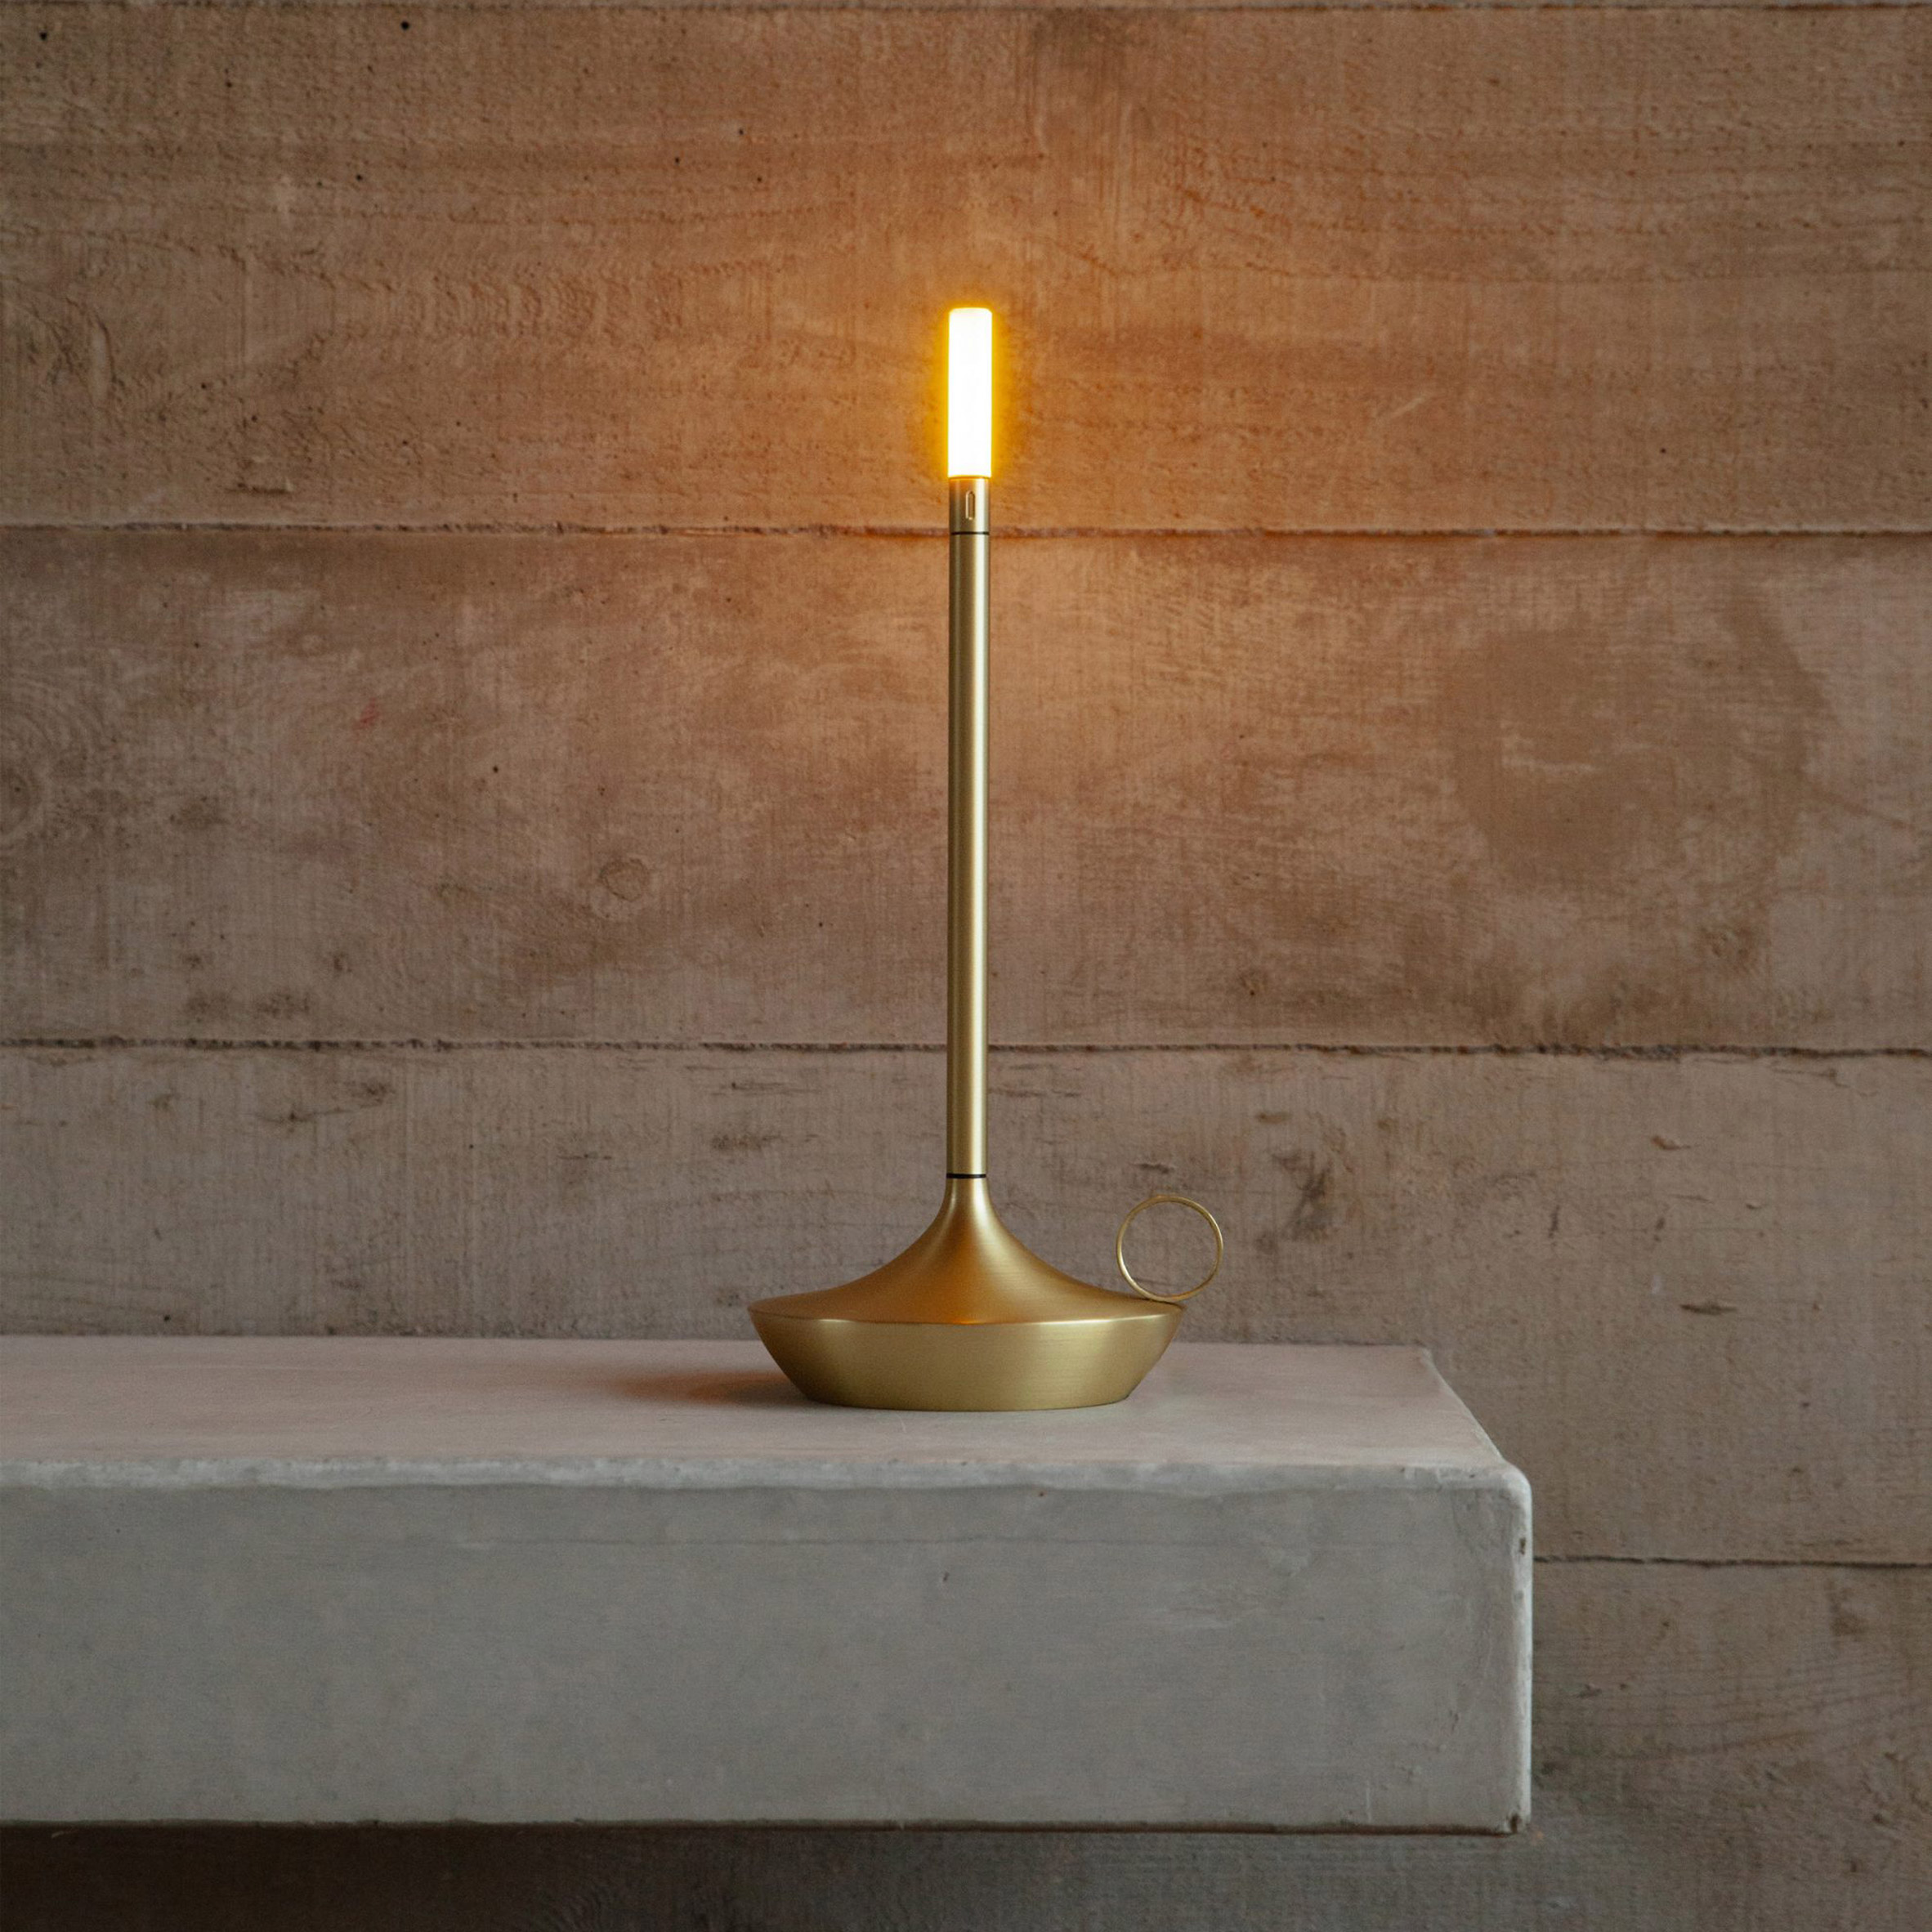 Wick portable lighting fixture by Graypants